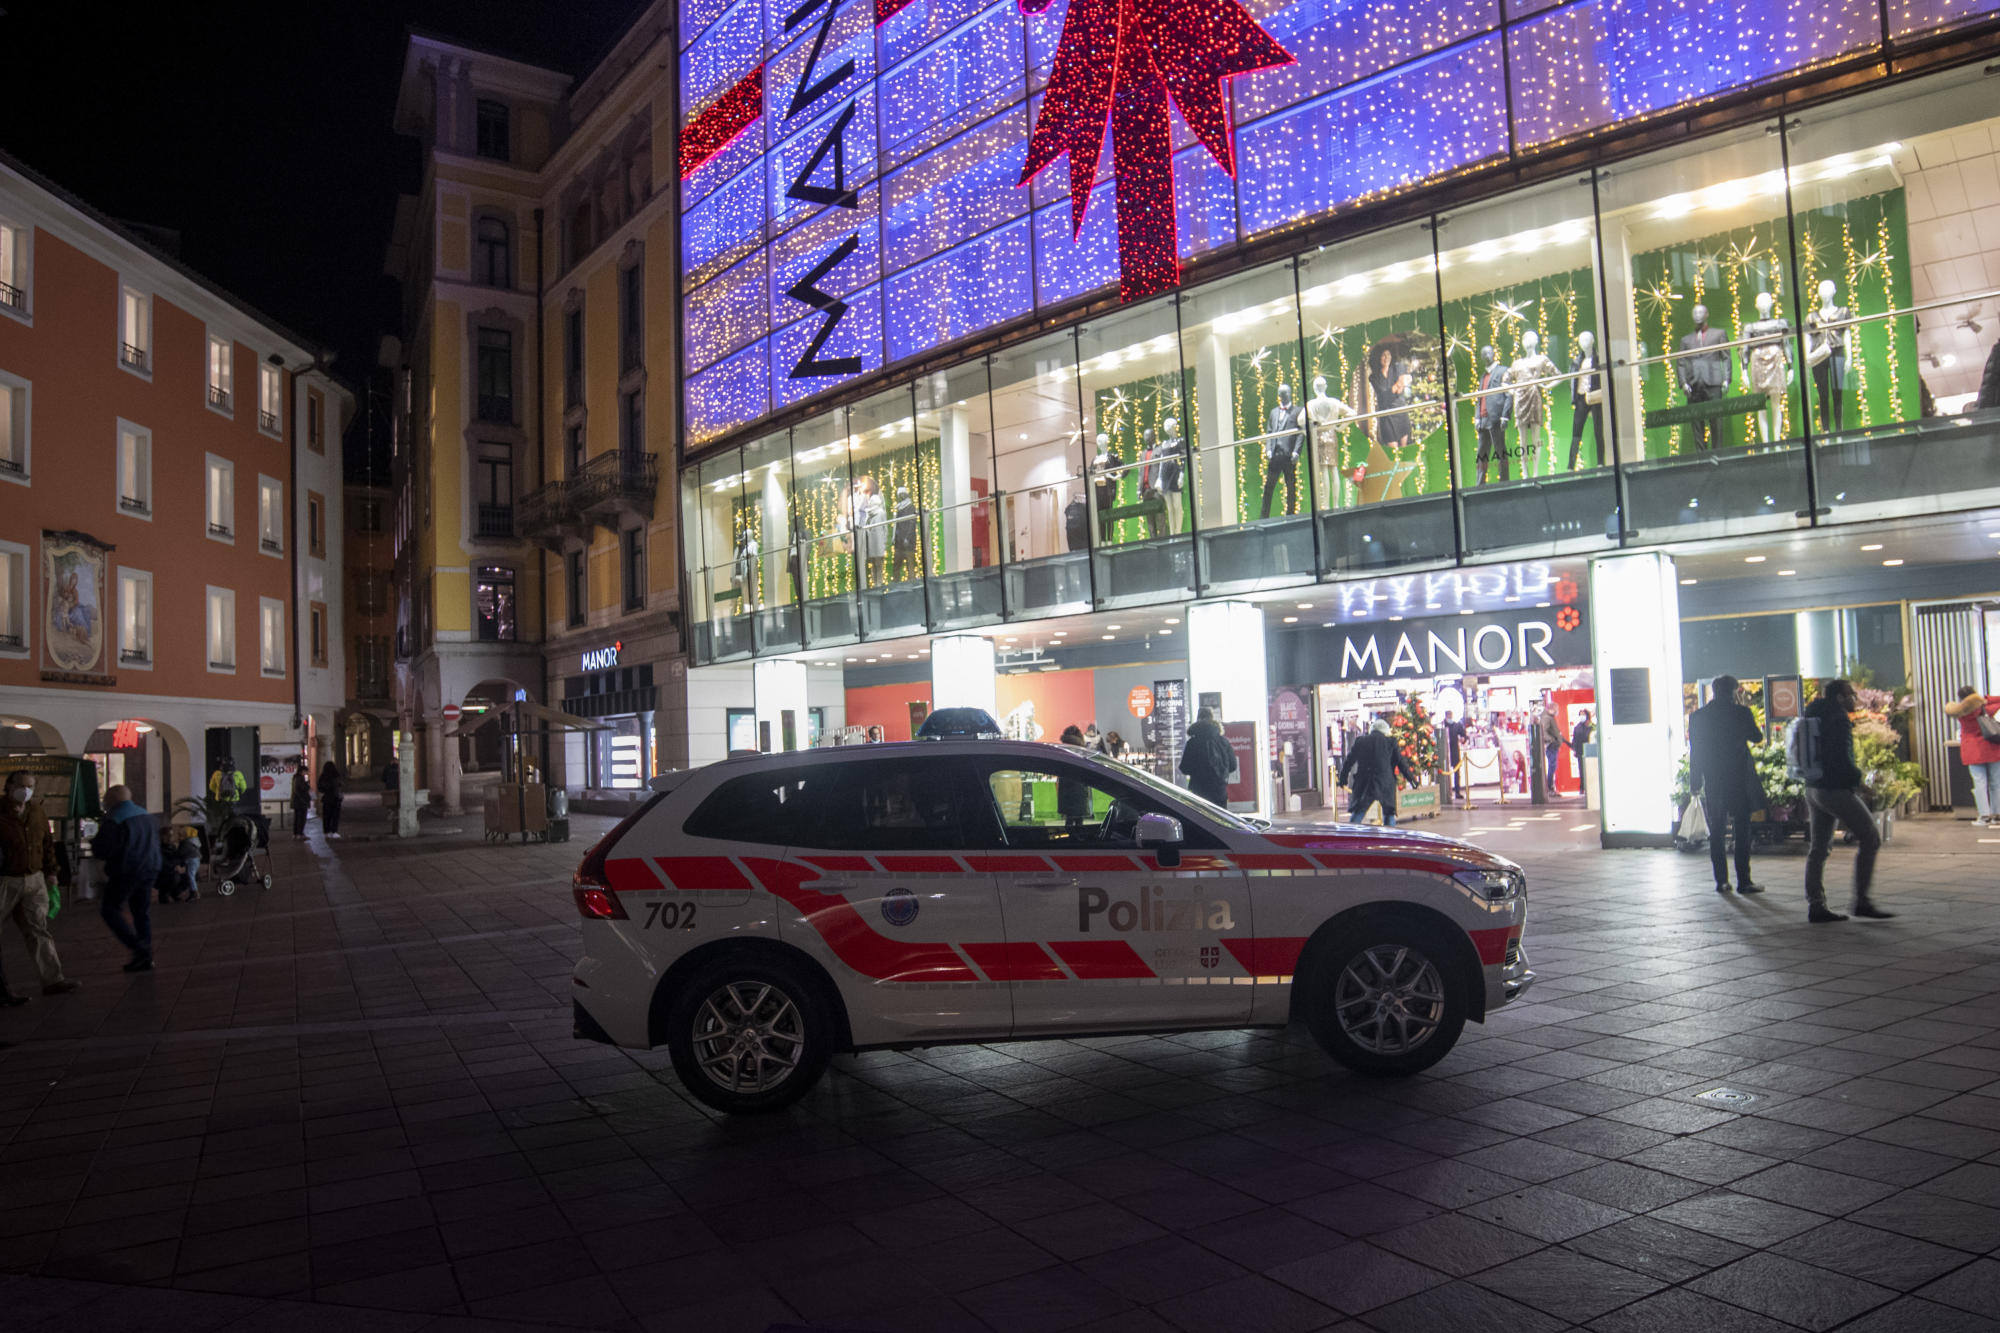 Suspect in Swiss knife attack had tried to travel to Syria